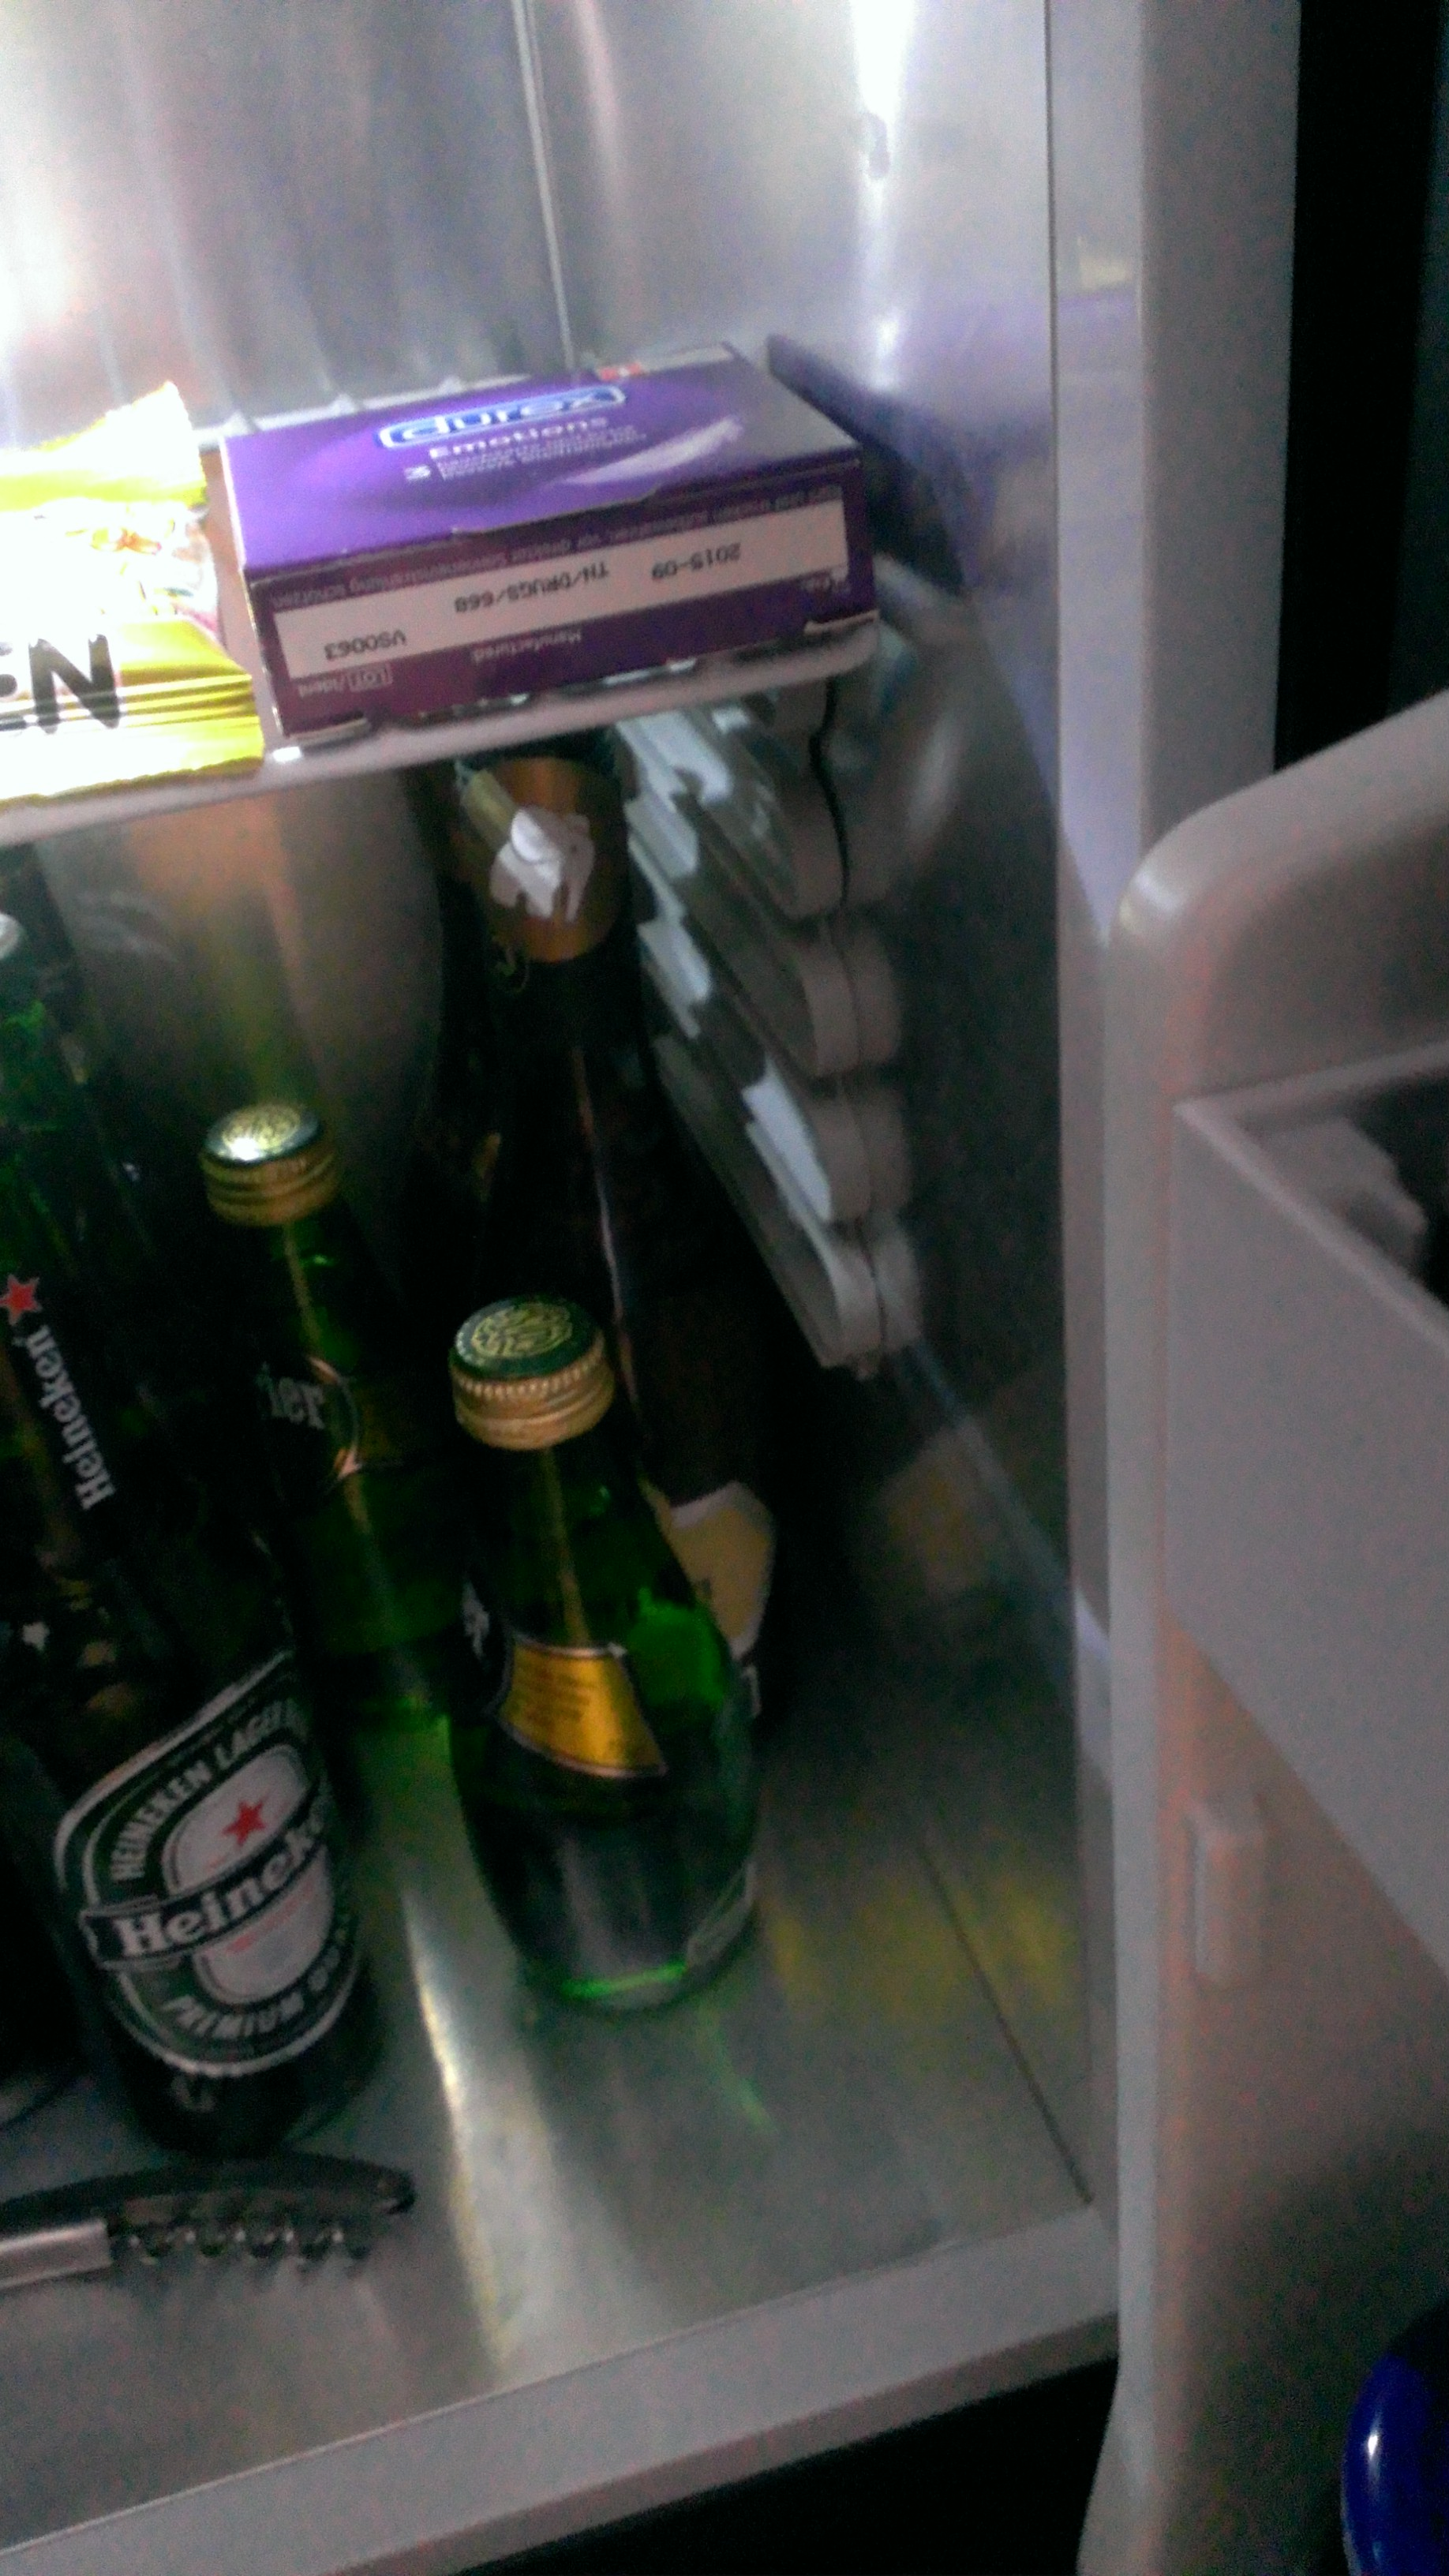 Condom packet in the fridge